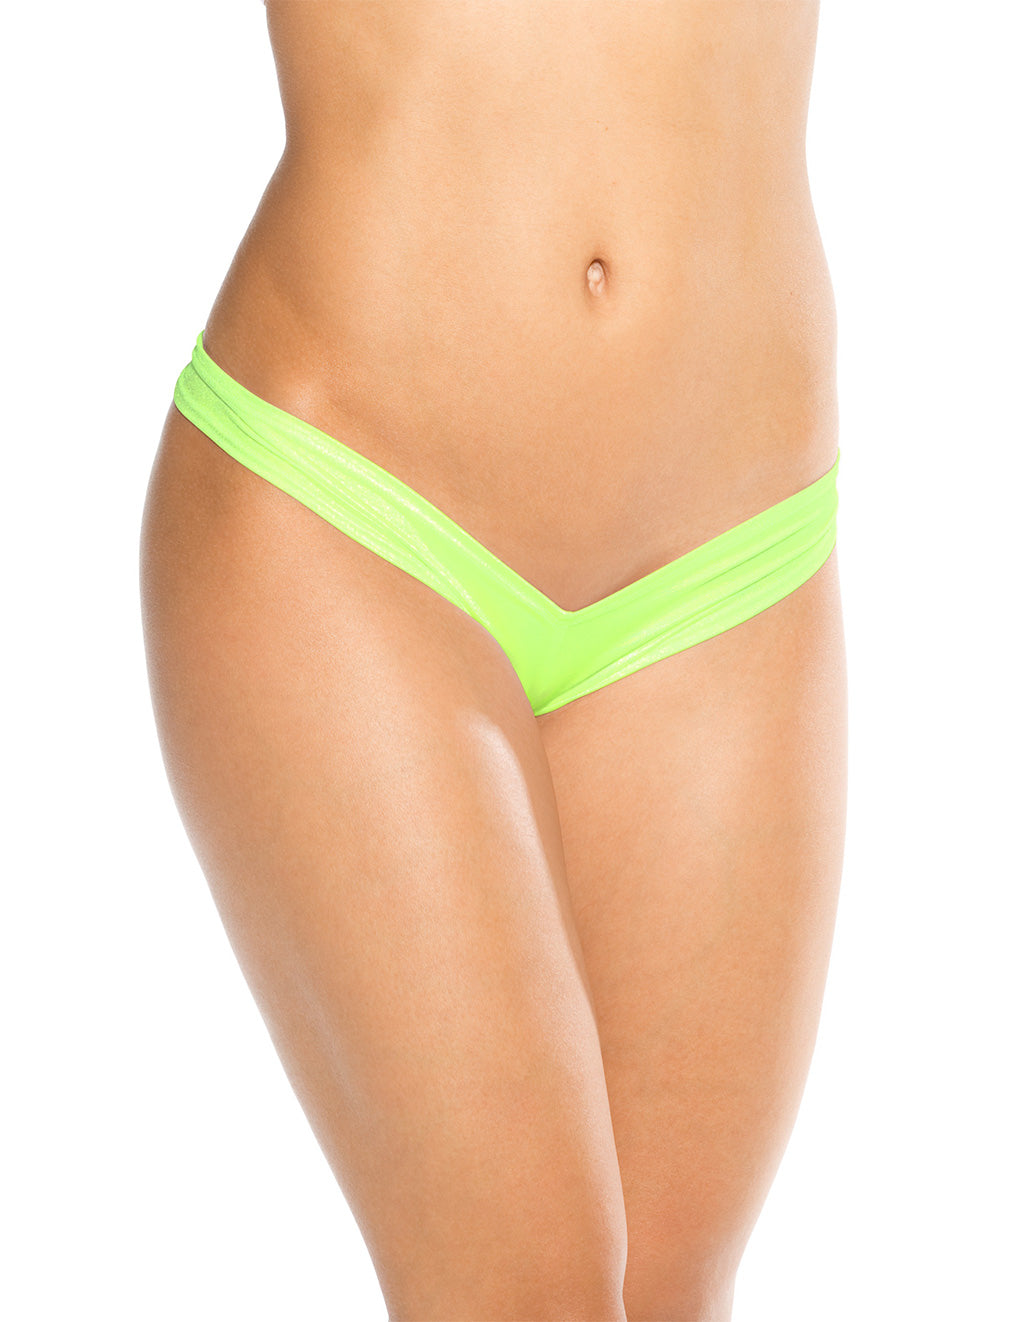 Bodyshotz Scrunch Back Boyshort Neon Green